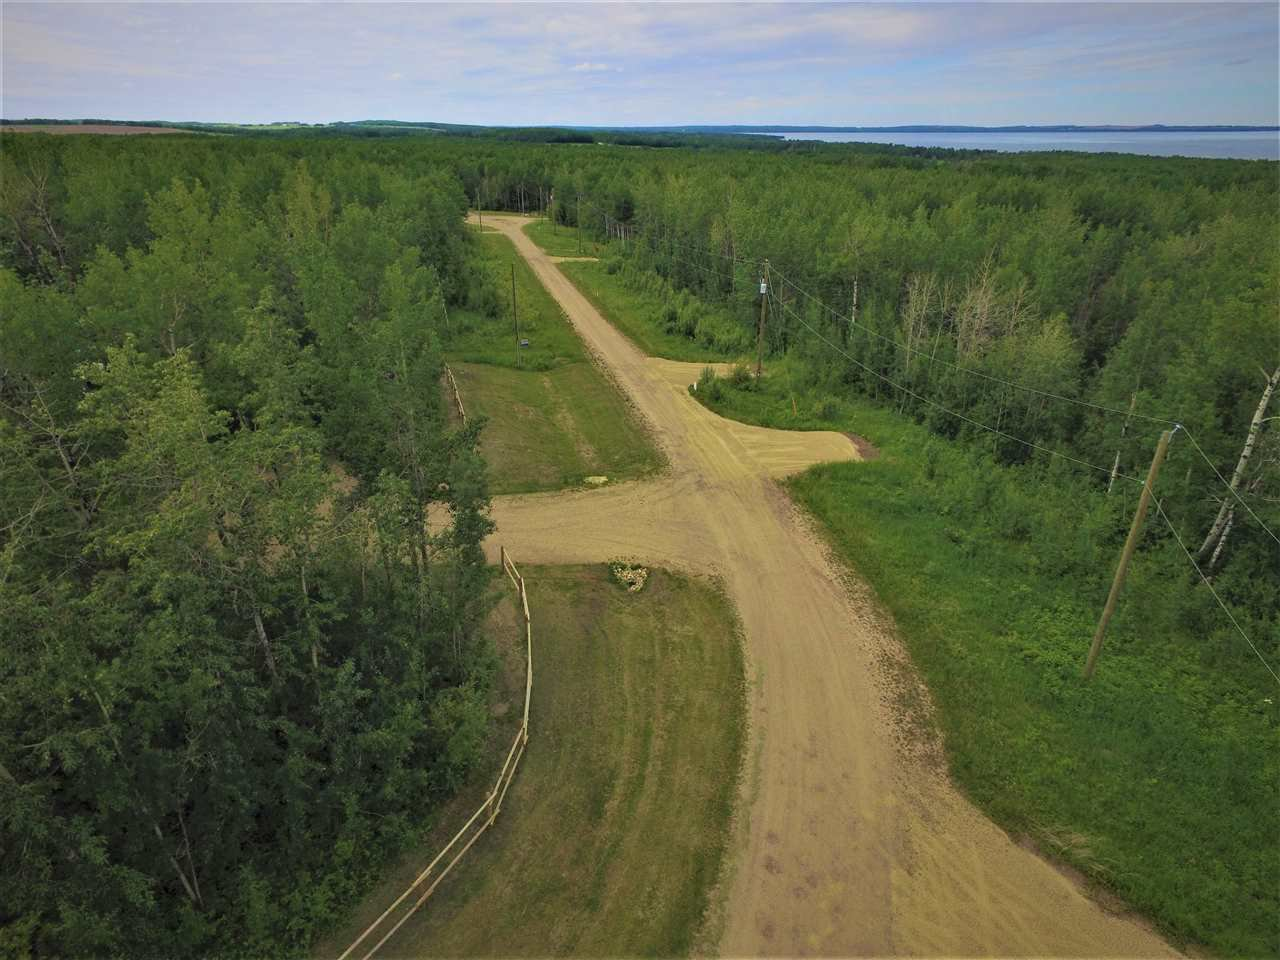 Main Photo: #11 13070 Twp Rd 464: Rural Wetaskiwin County Rural Land/Vacant Lot for sale : MLS®# E4195644